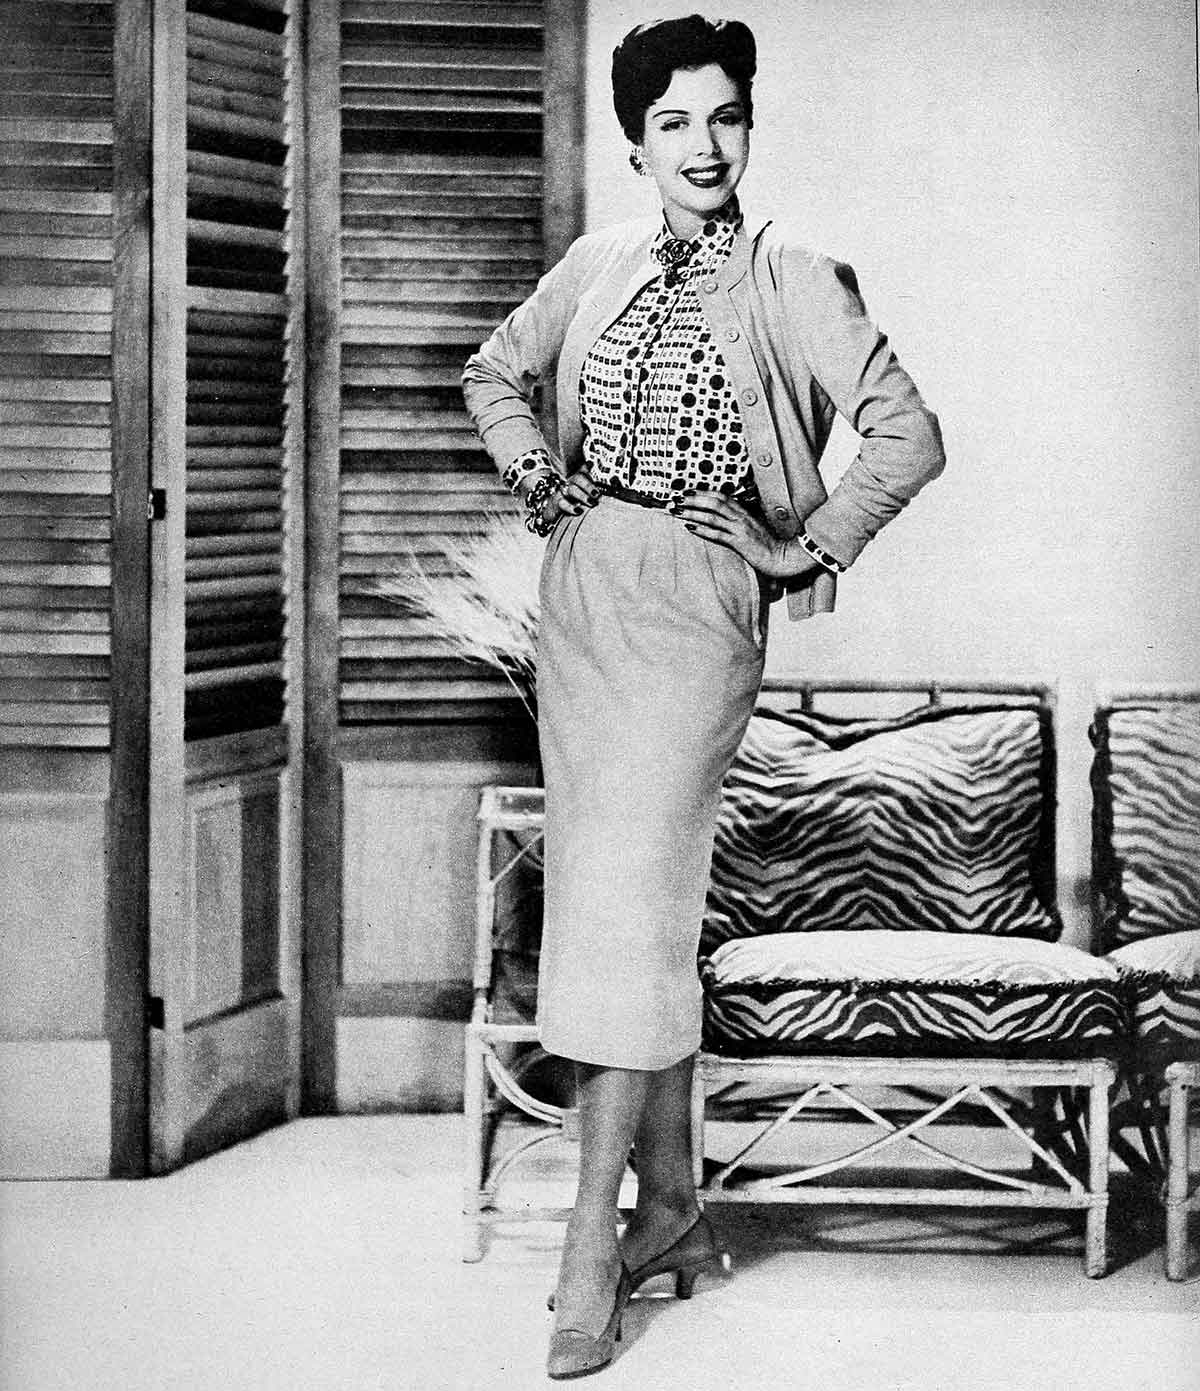 1950s-Fashion---The-Sweater-Winter-Dress-1954